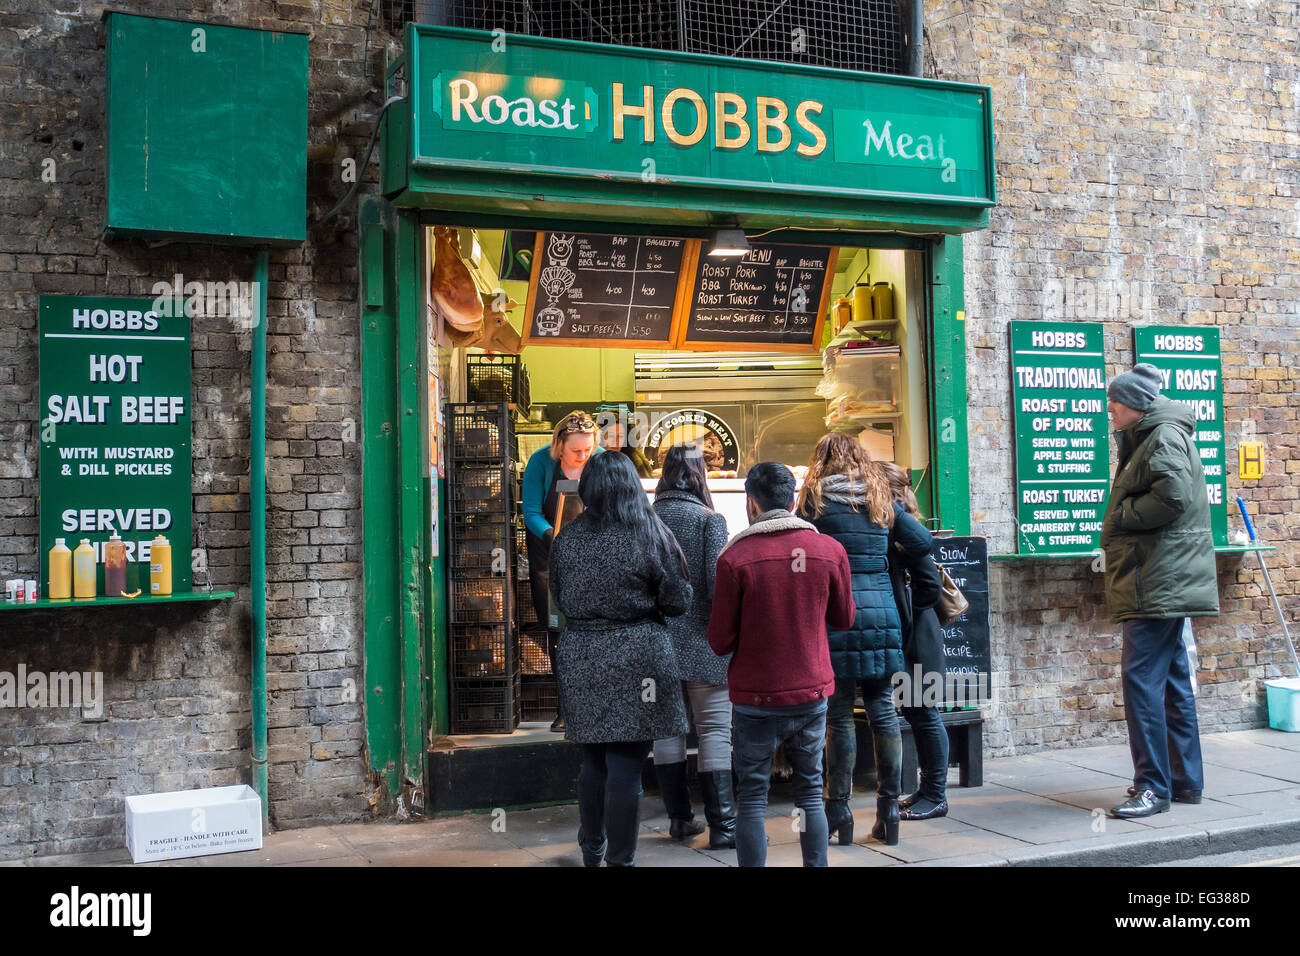 Roast Meat Market Stall Borough Market Southwark London UK - Stock Image